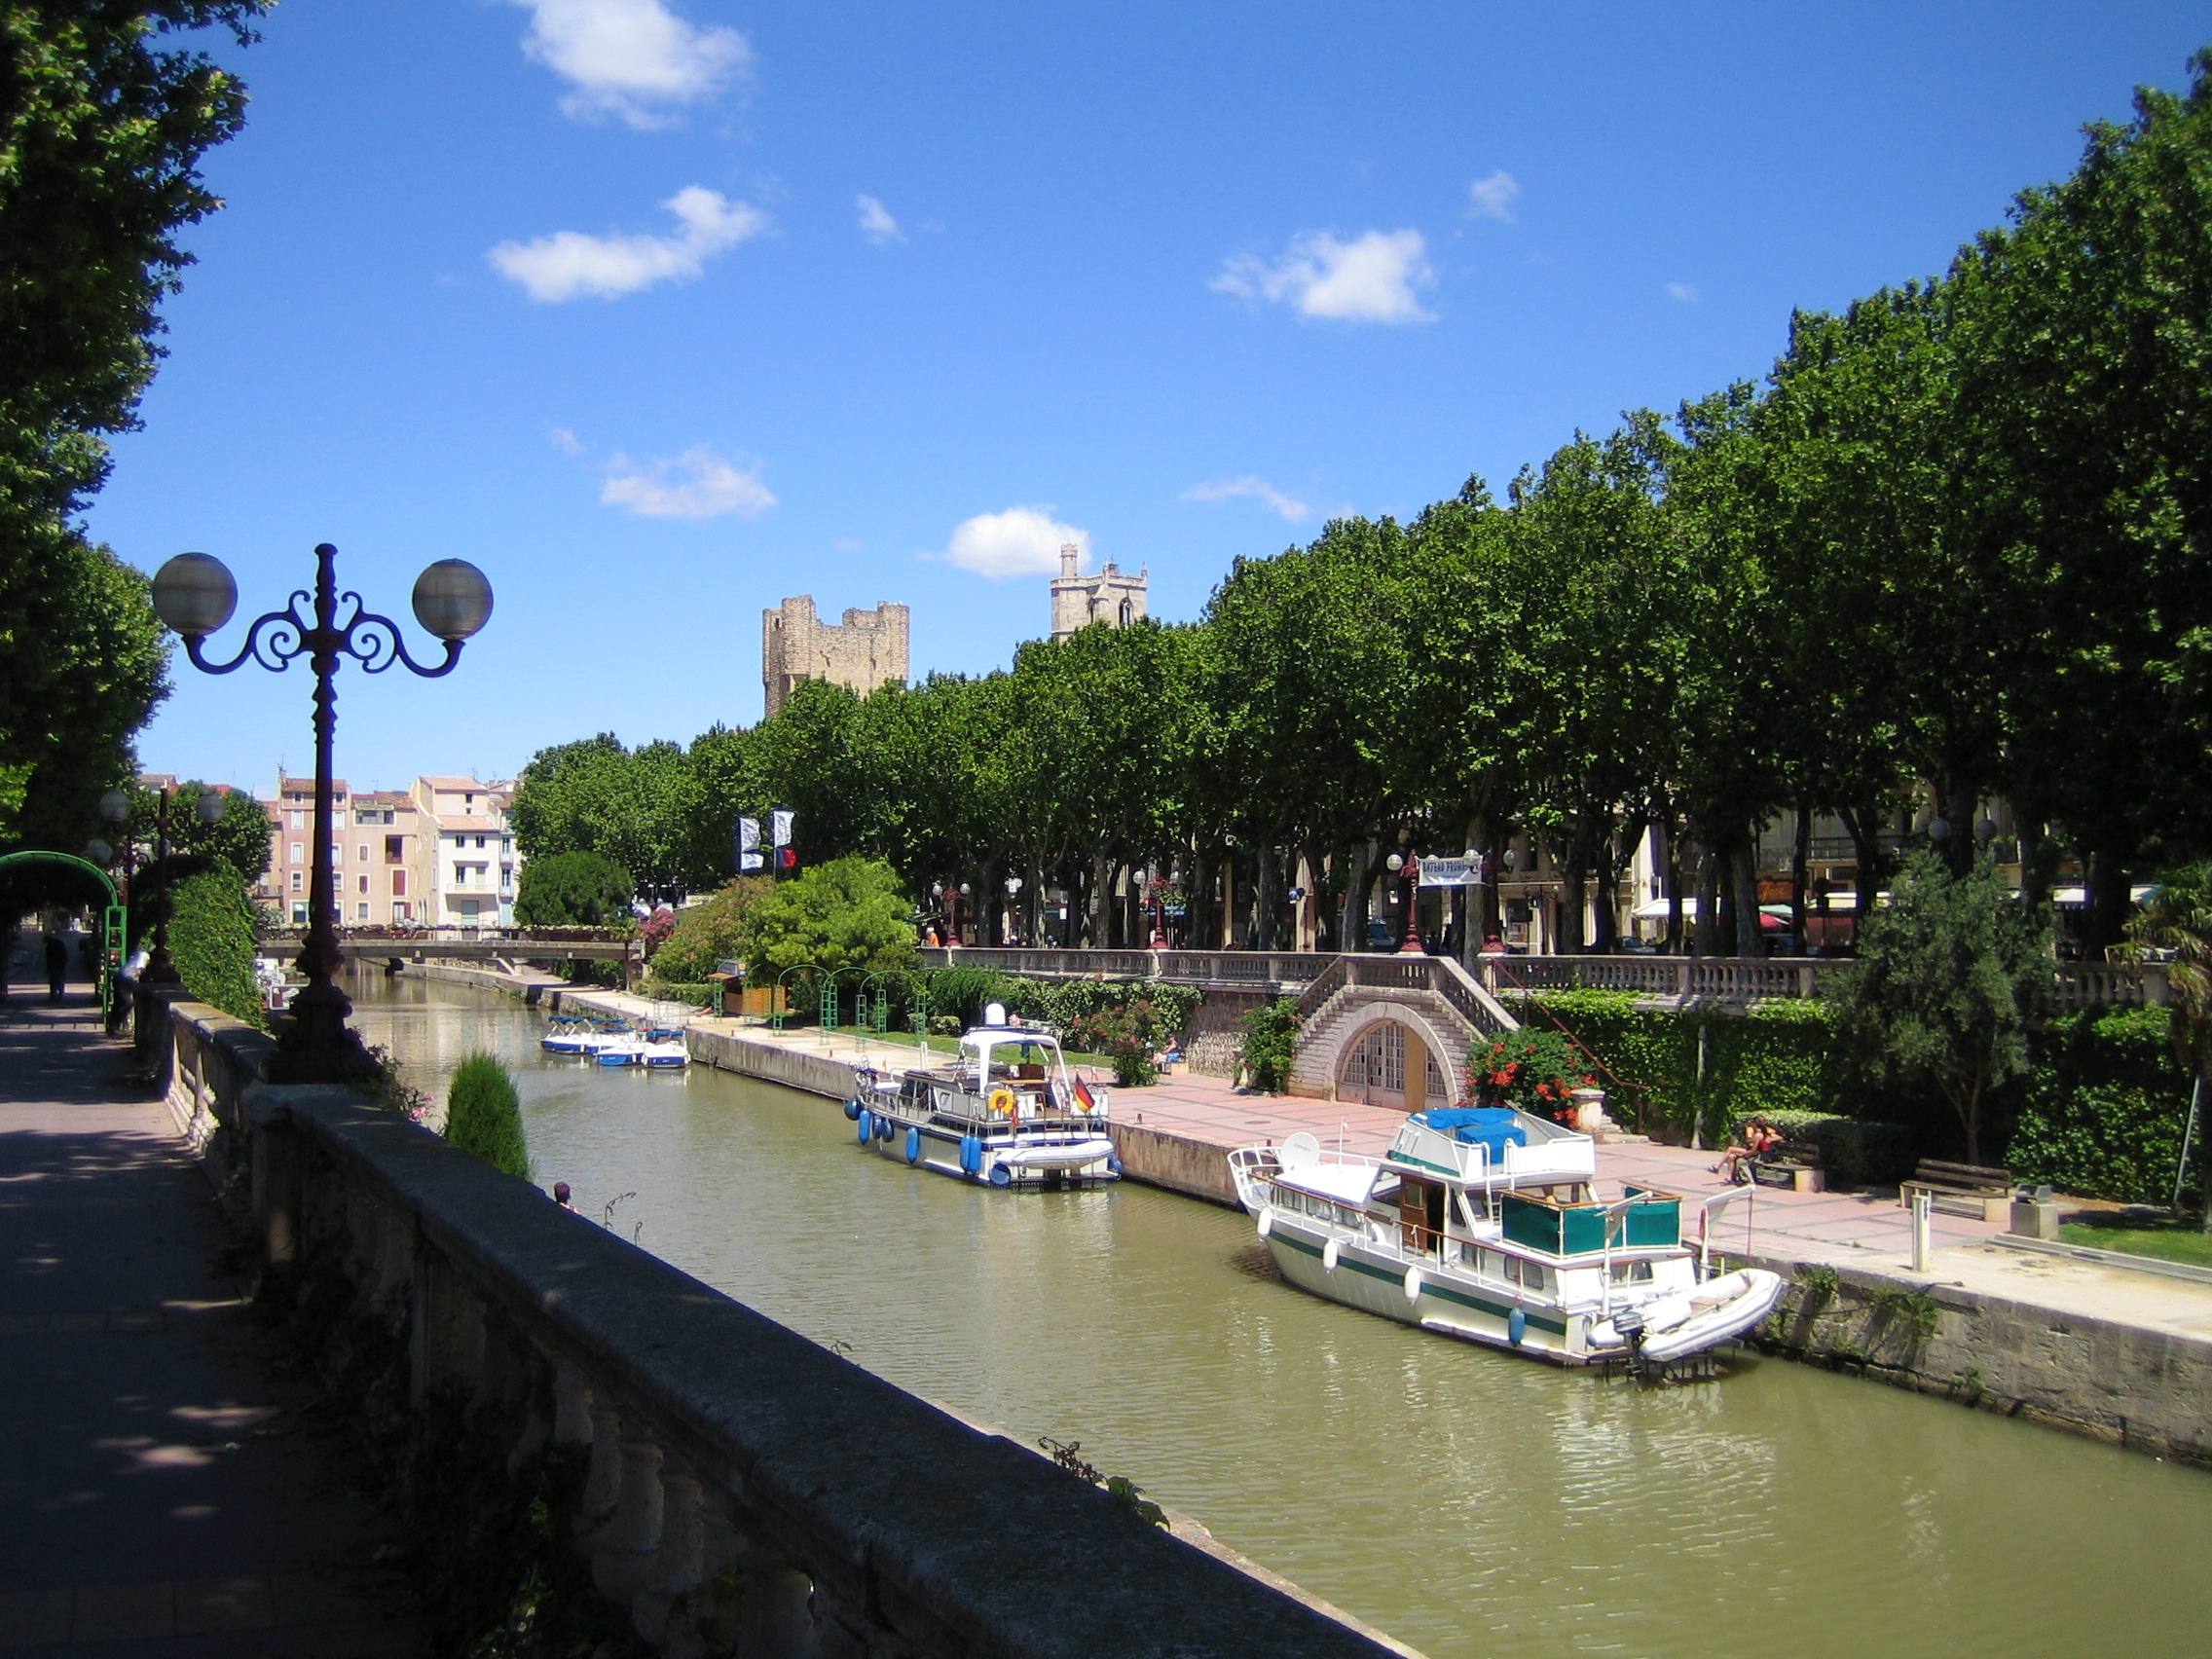 http://upload.wikimedia.org/wikipedia/commons/e/e4/Narbonne_canal.jpg